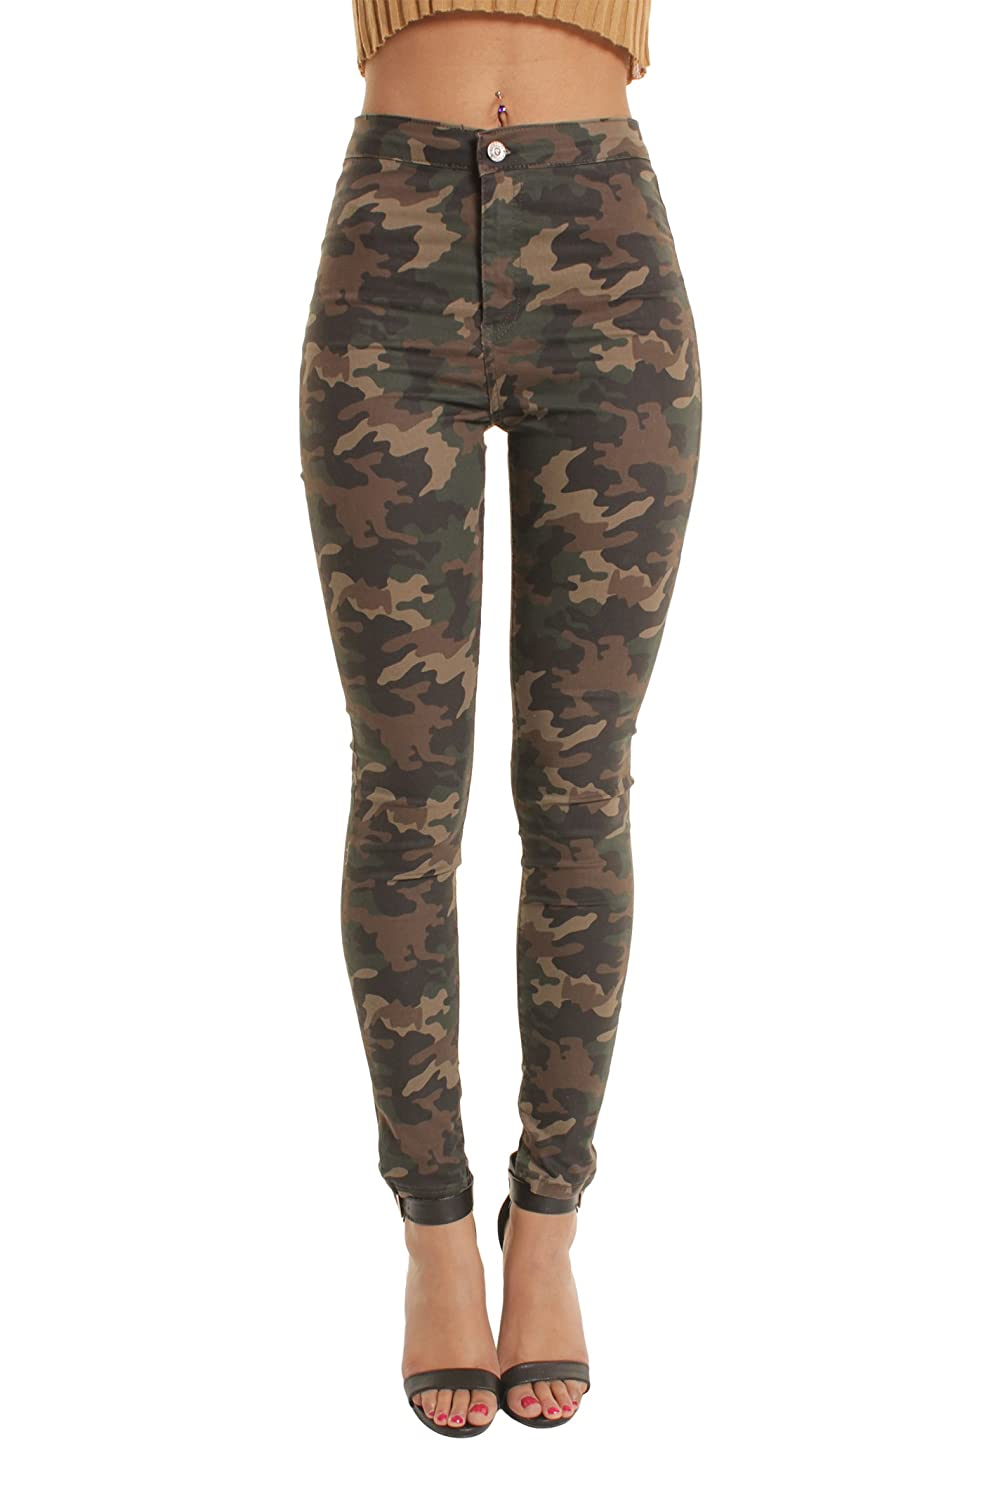 Camouflage Wine Shades of Blue Black Portobello Punk High Waisted Skinny Jeans in White